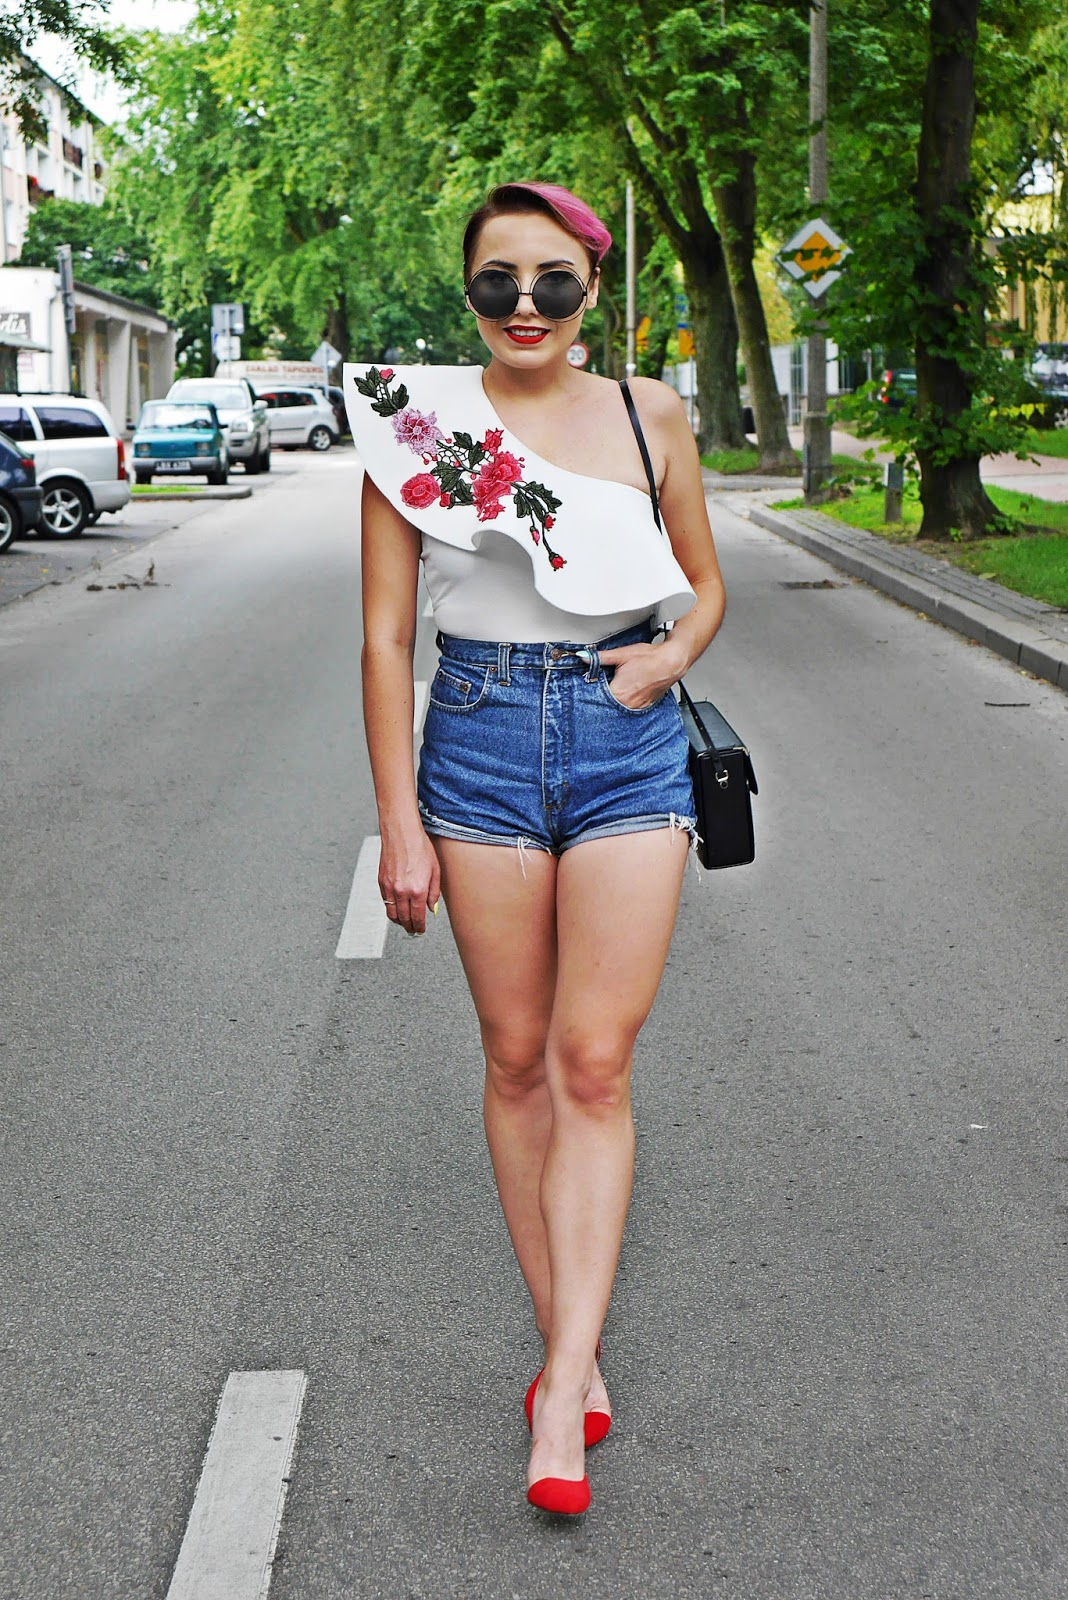 ruffle_embroidery_white_top_high_waist_shorts_red_heels_ootd_look_karyn_blog_modowy_250717d